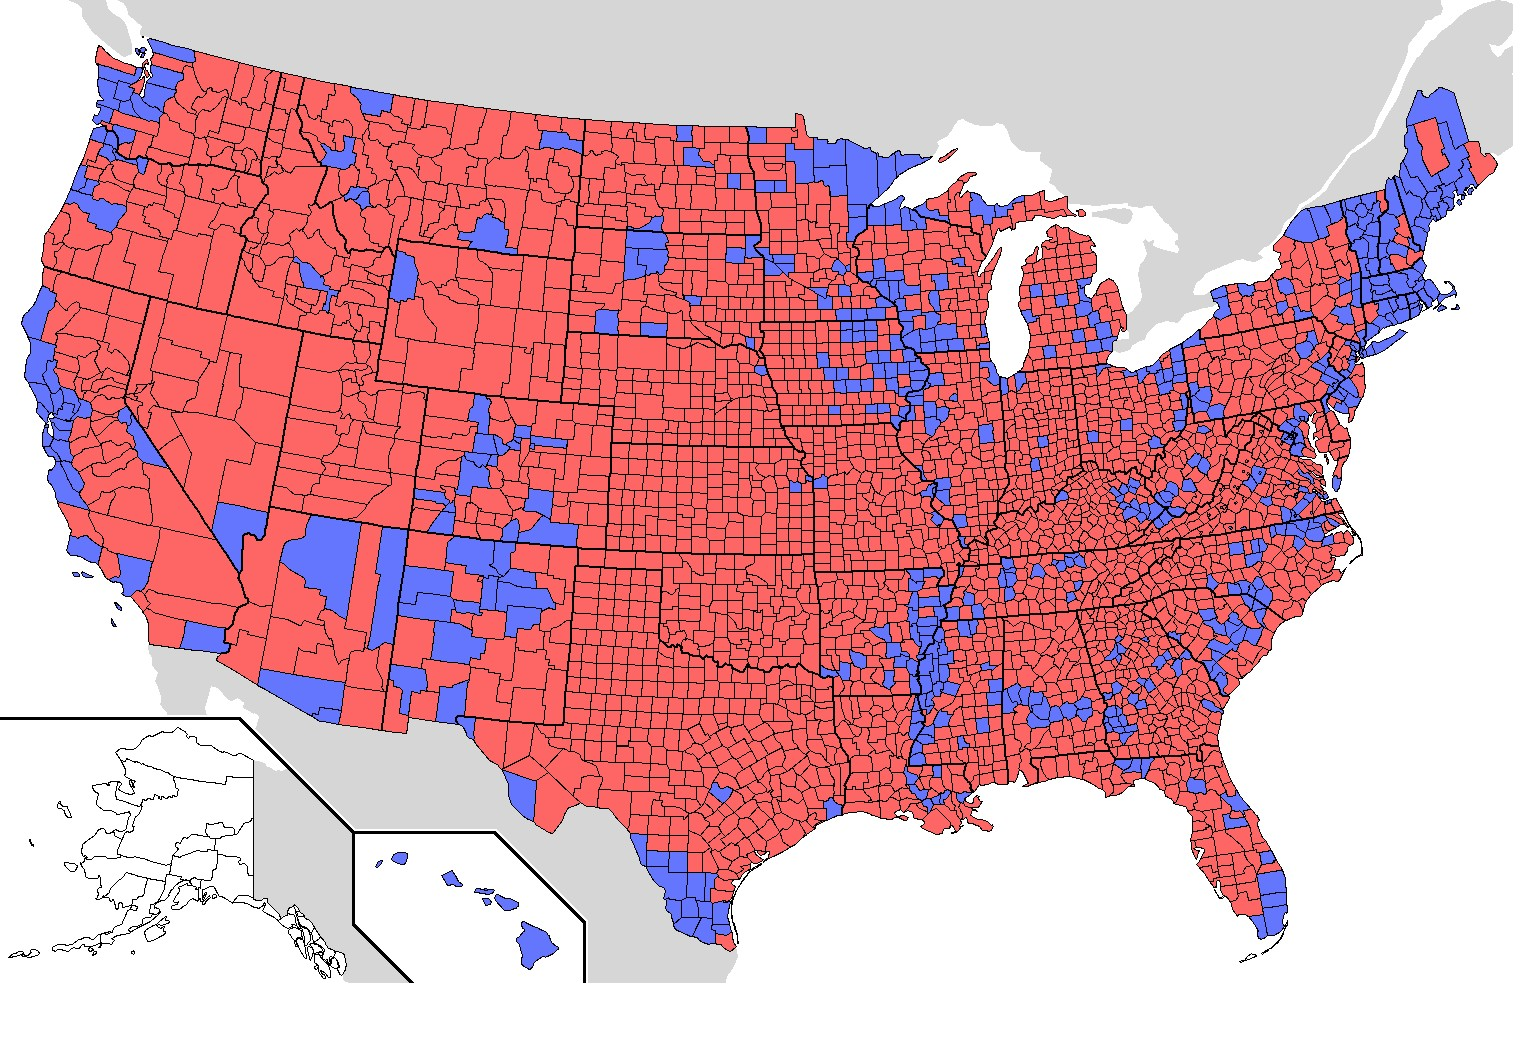 elections york city california chicago large concentrations democrats 2008 2004